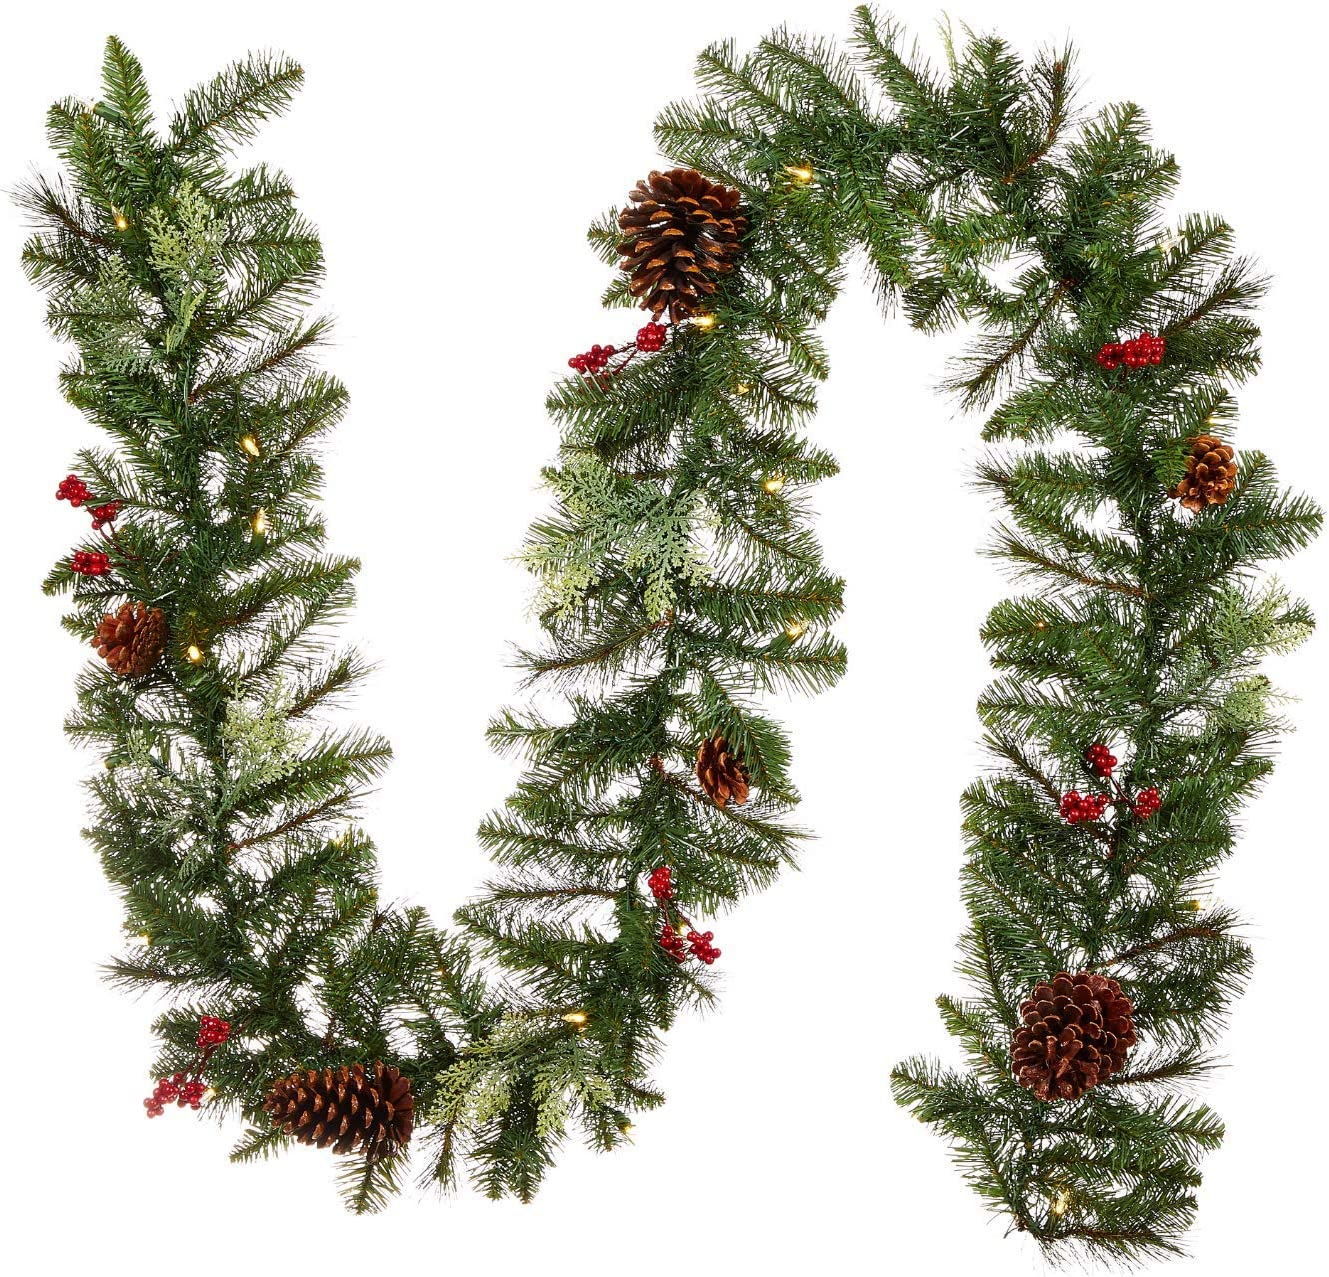 Amazon Com Noma Pre Lit 9 Ft Led Berries Pinecones Christmas Garland With Battery Operated Lights 35 Warm White Bulbs 195 Pine Tips Preston Home Kitchen